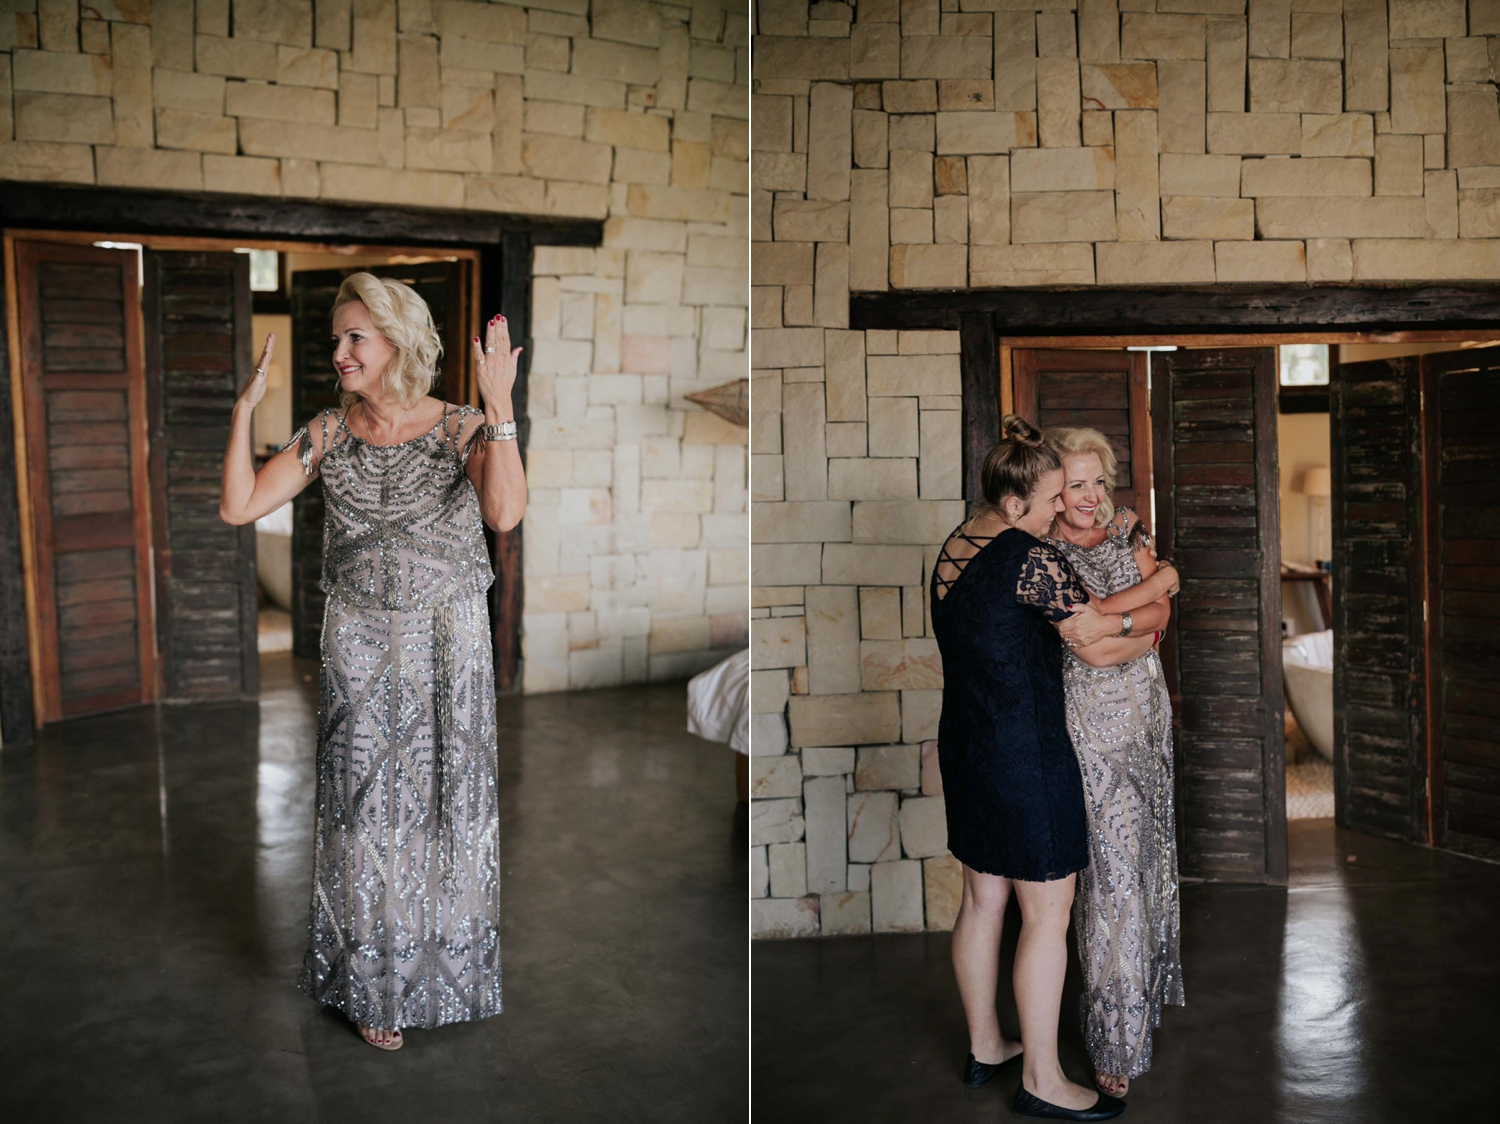 Emotional moment when mother of the bride sees her daughter all ready in her wedding dress for the first time